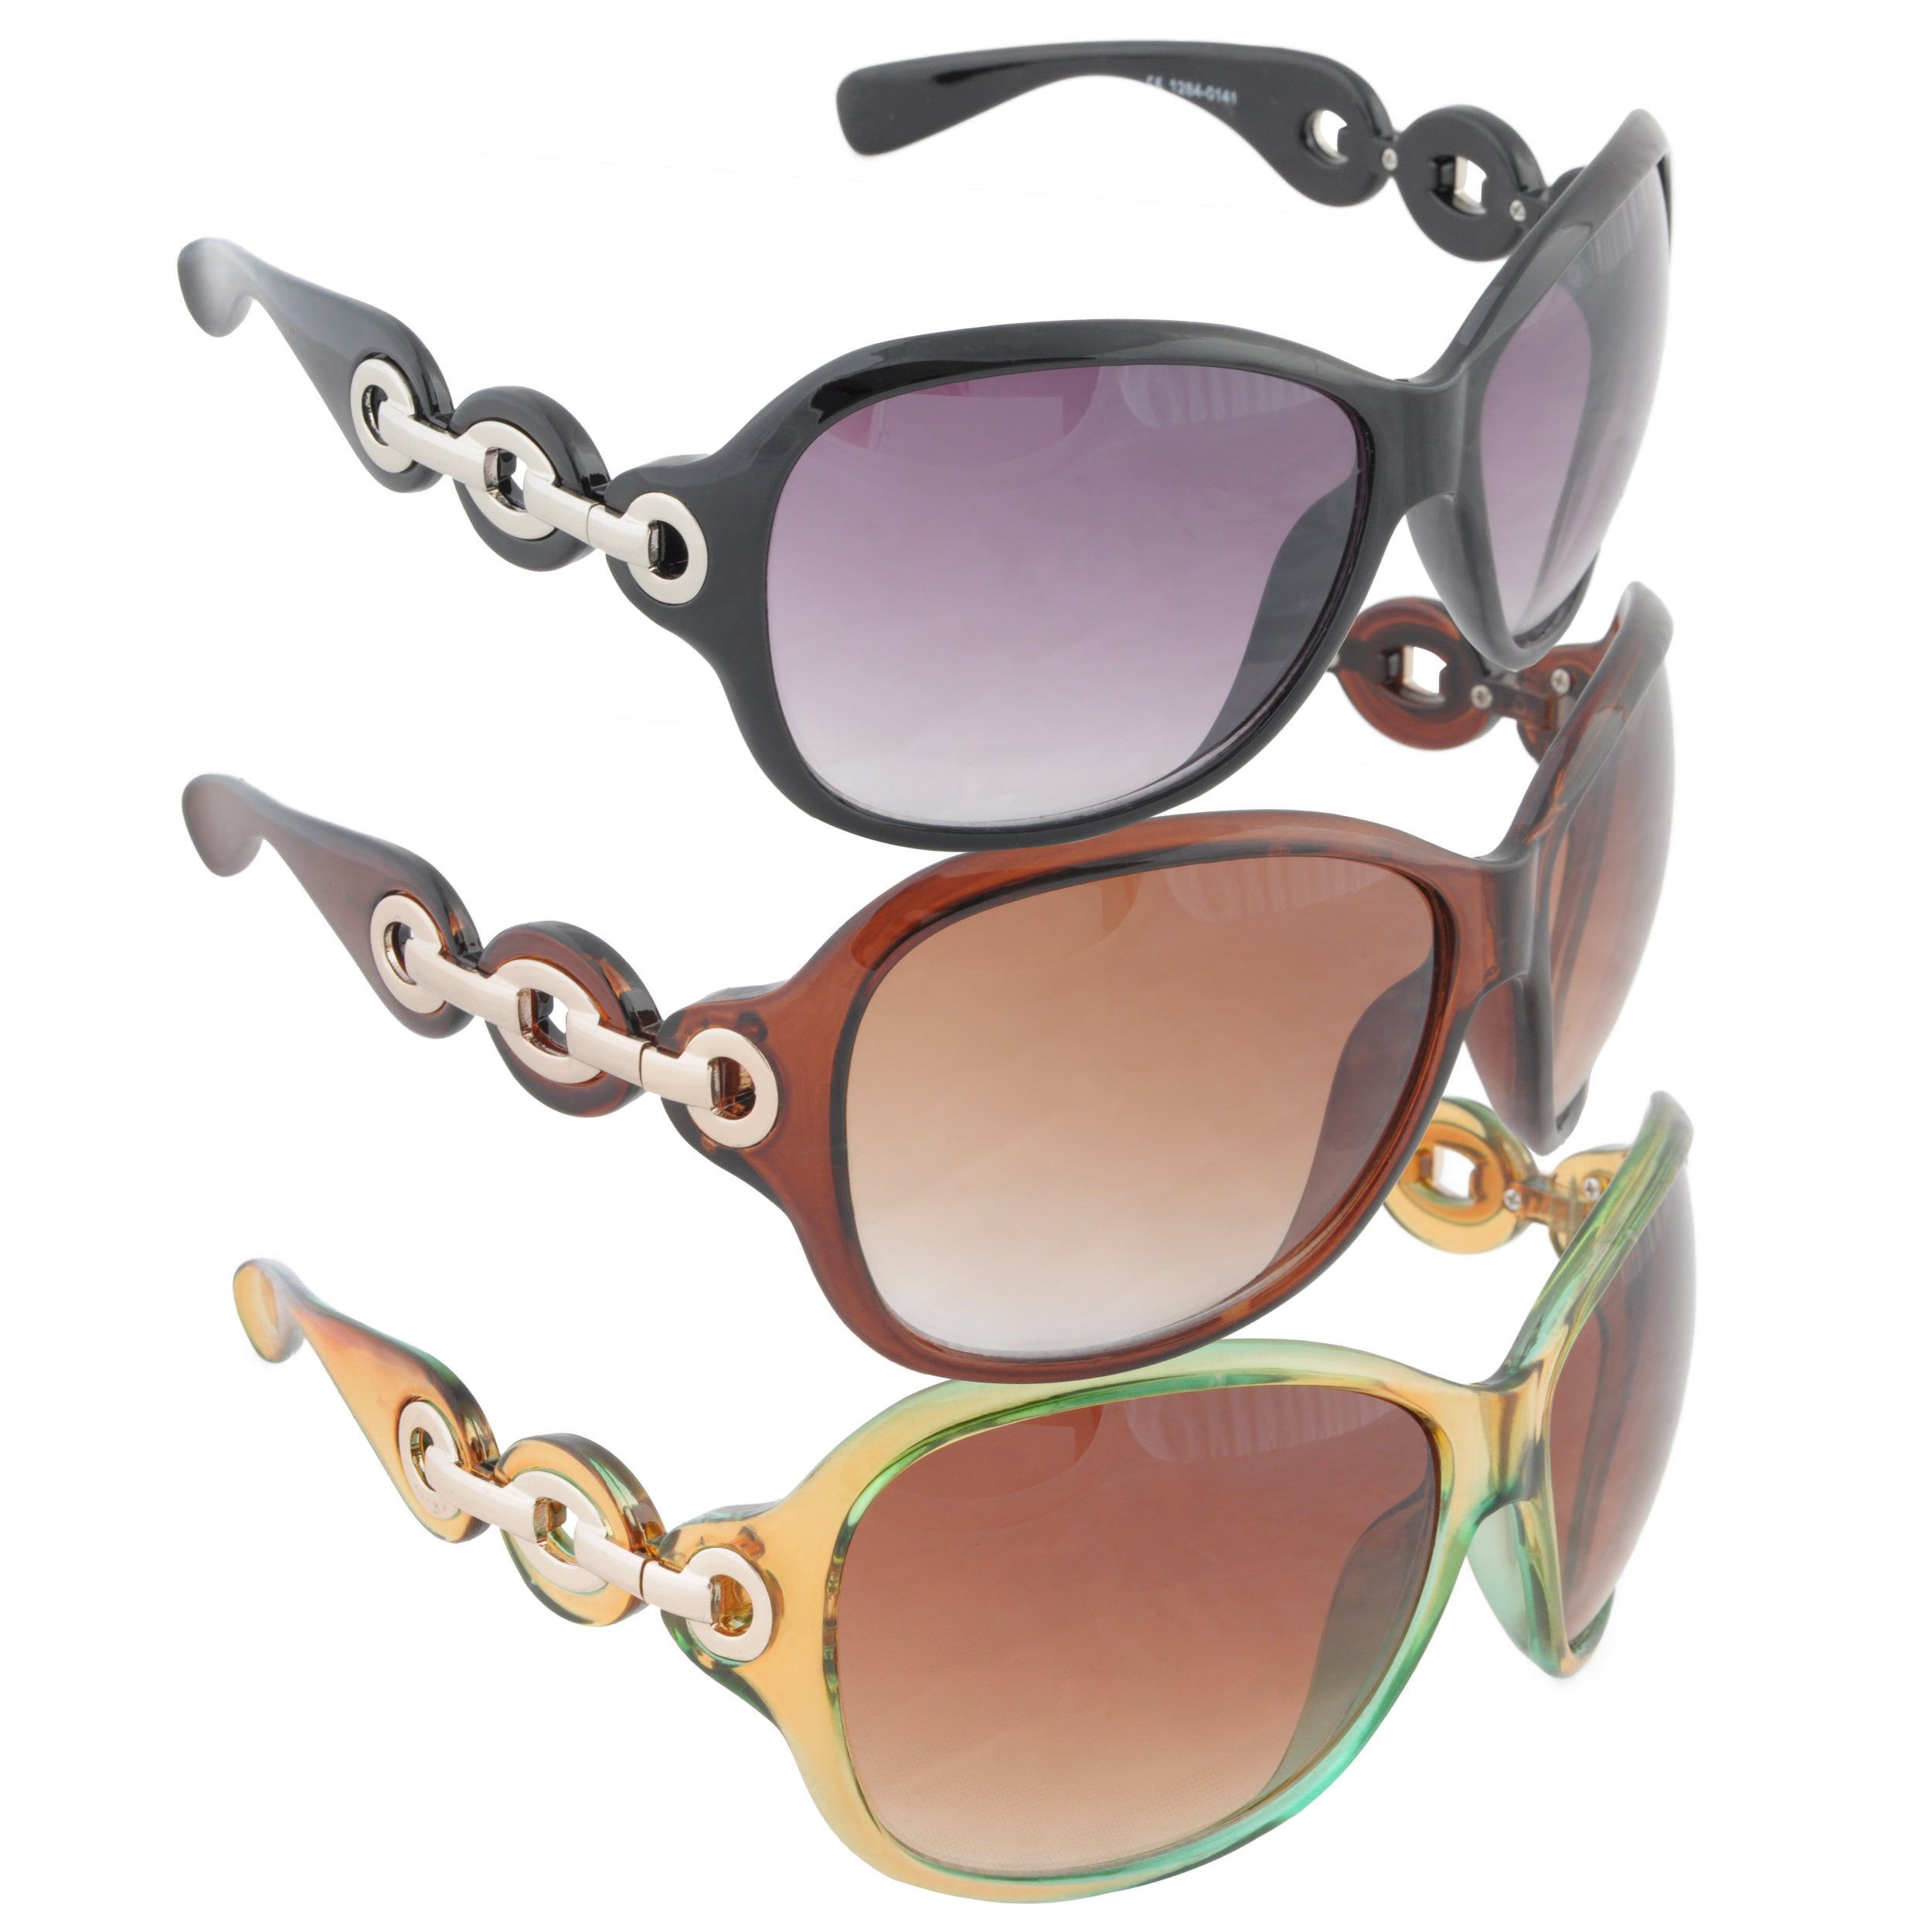 Adi Designs Women's Oversize Sunglasses